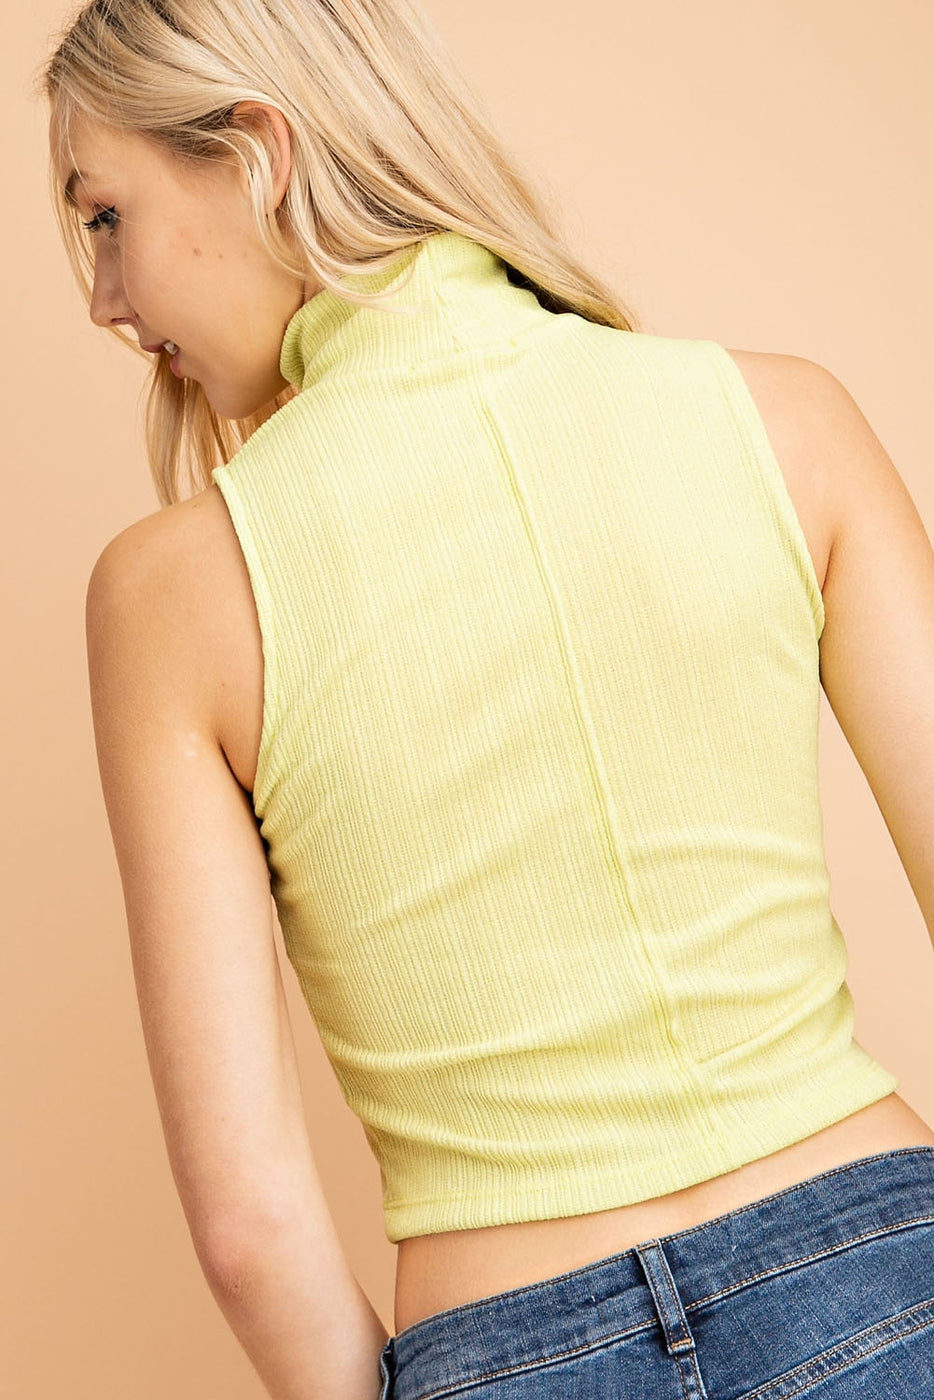 Turtle Neck Sleeveless Top In Light Green Siin Bees